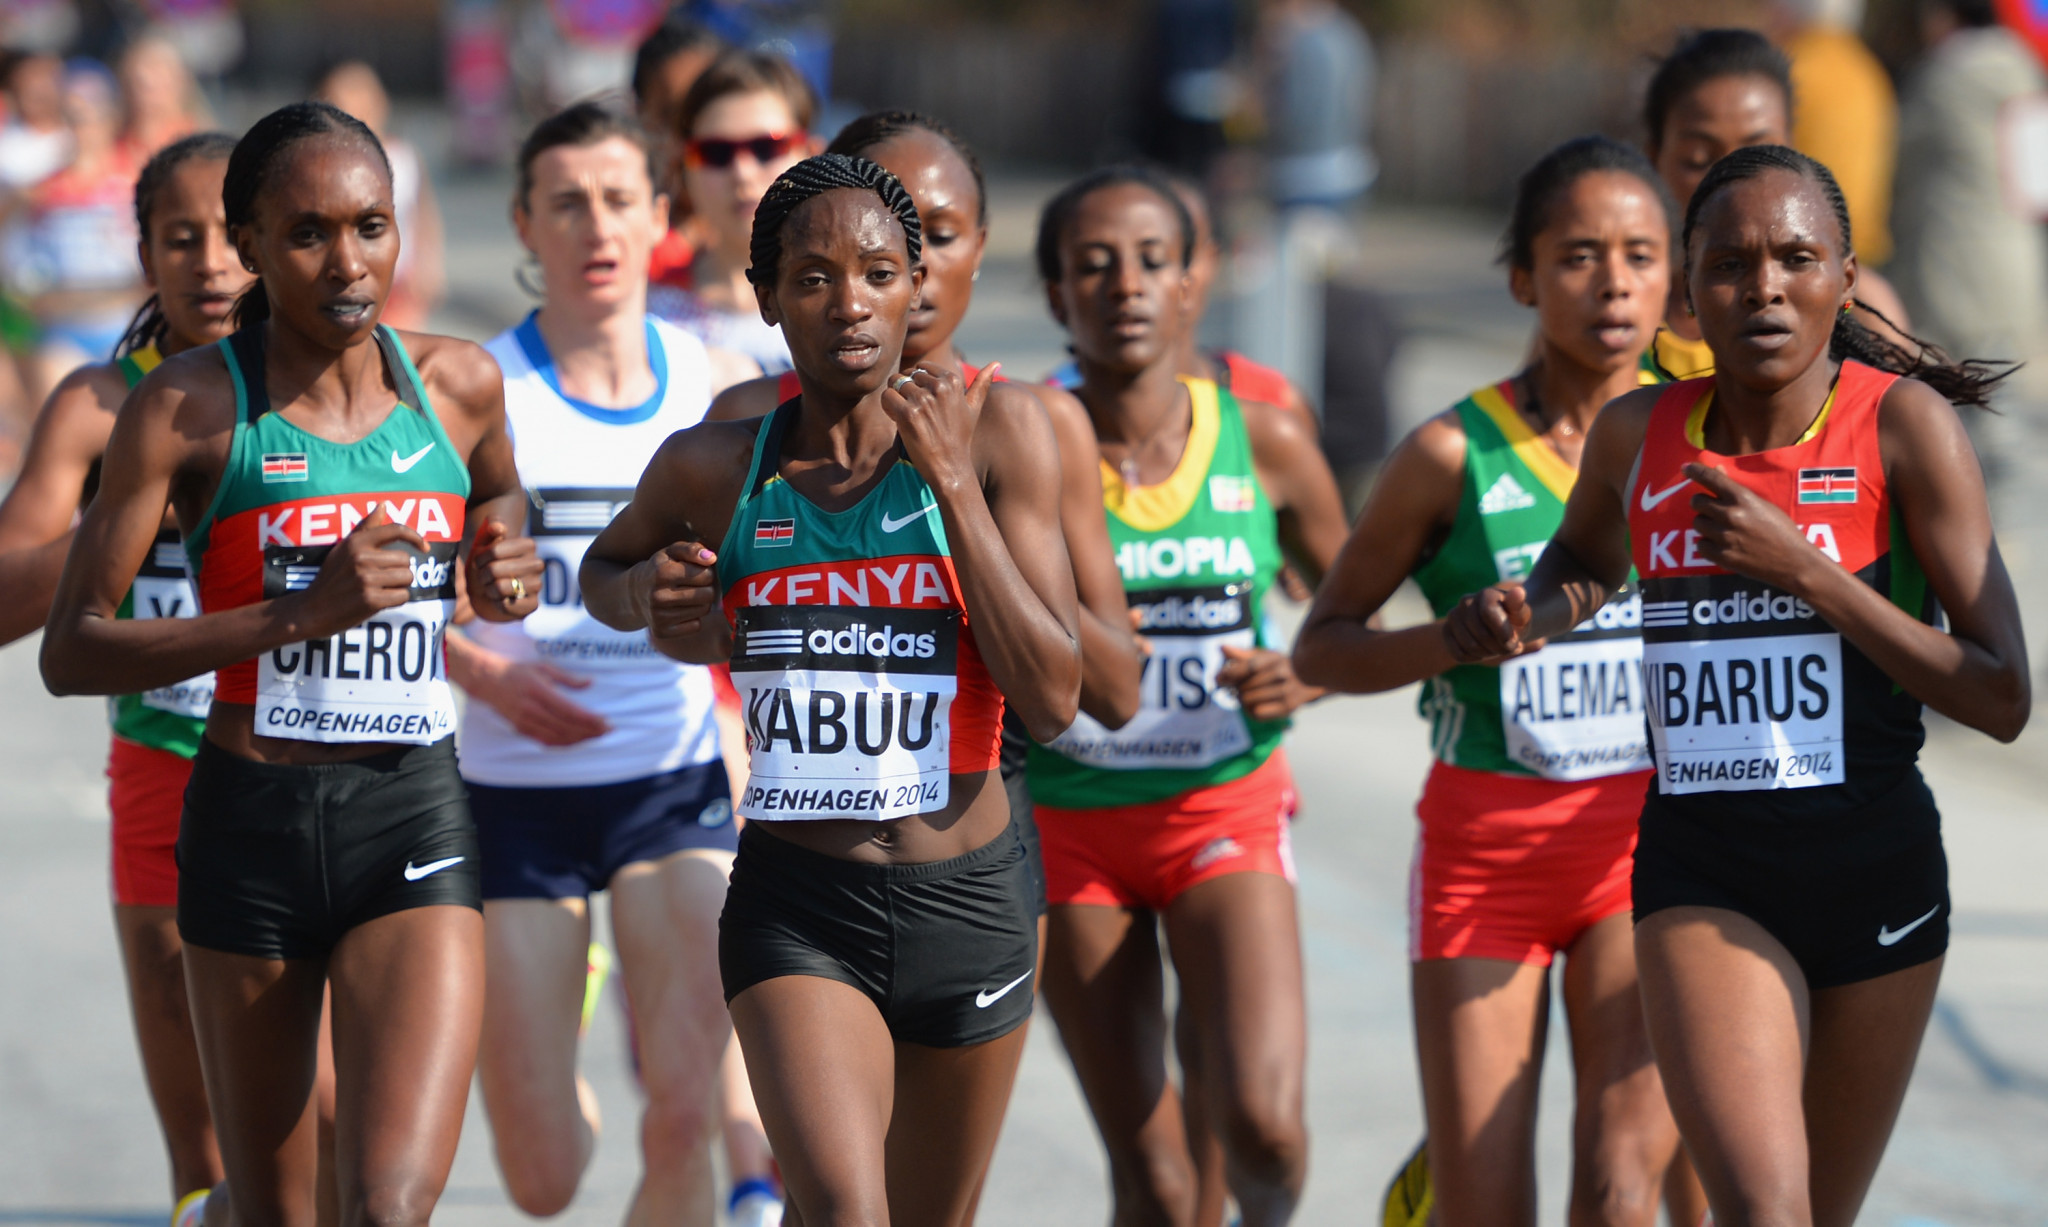 Kenya's Wangui handed two-year doping ban by Athletics Integrity Unit